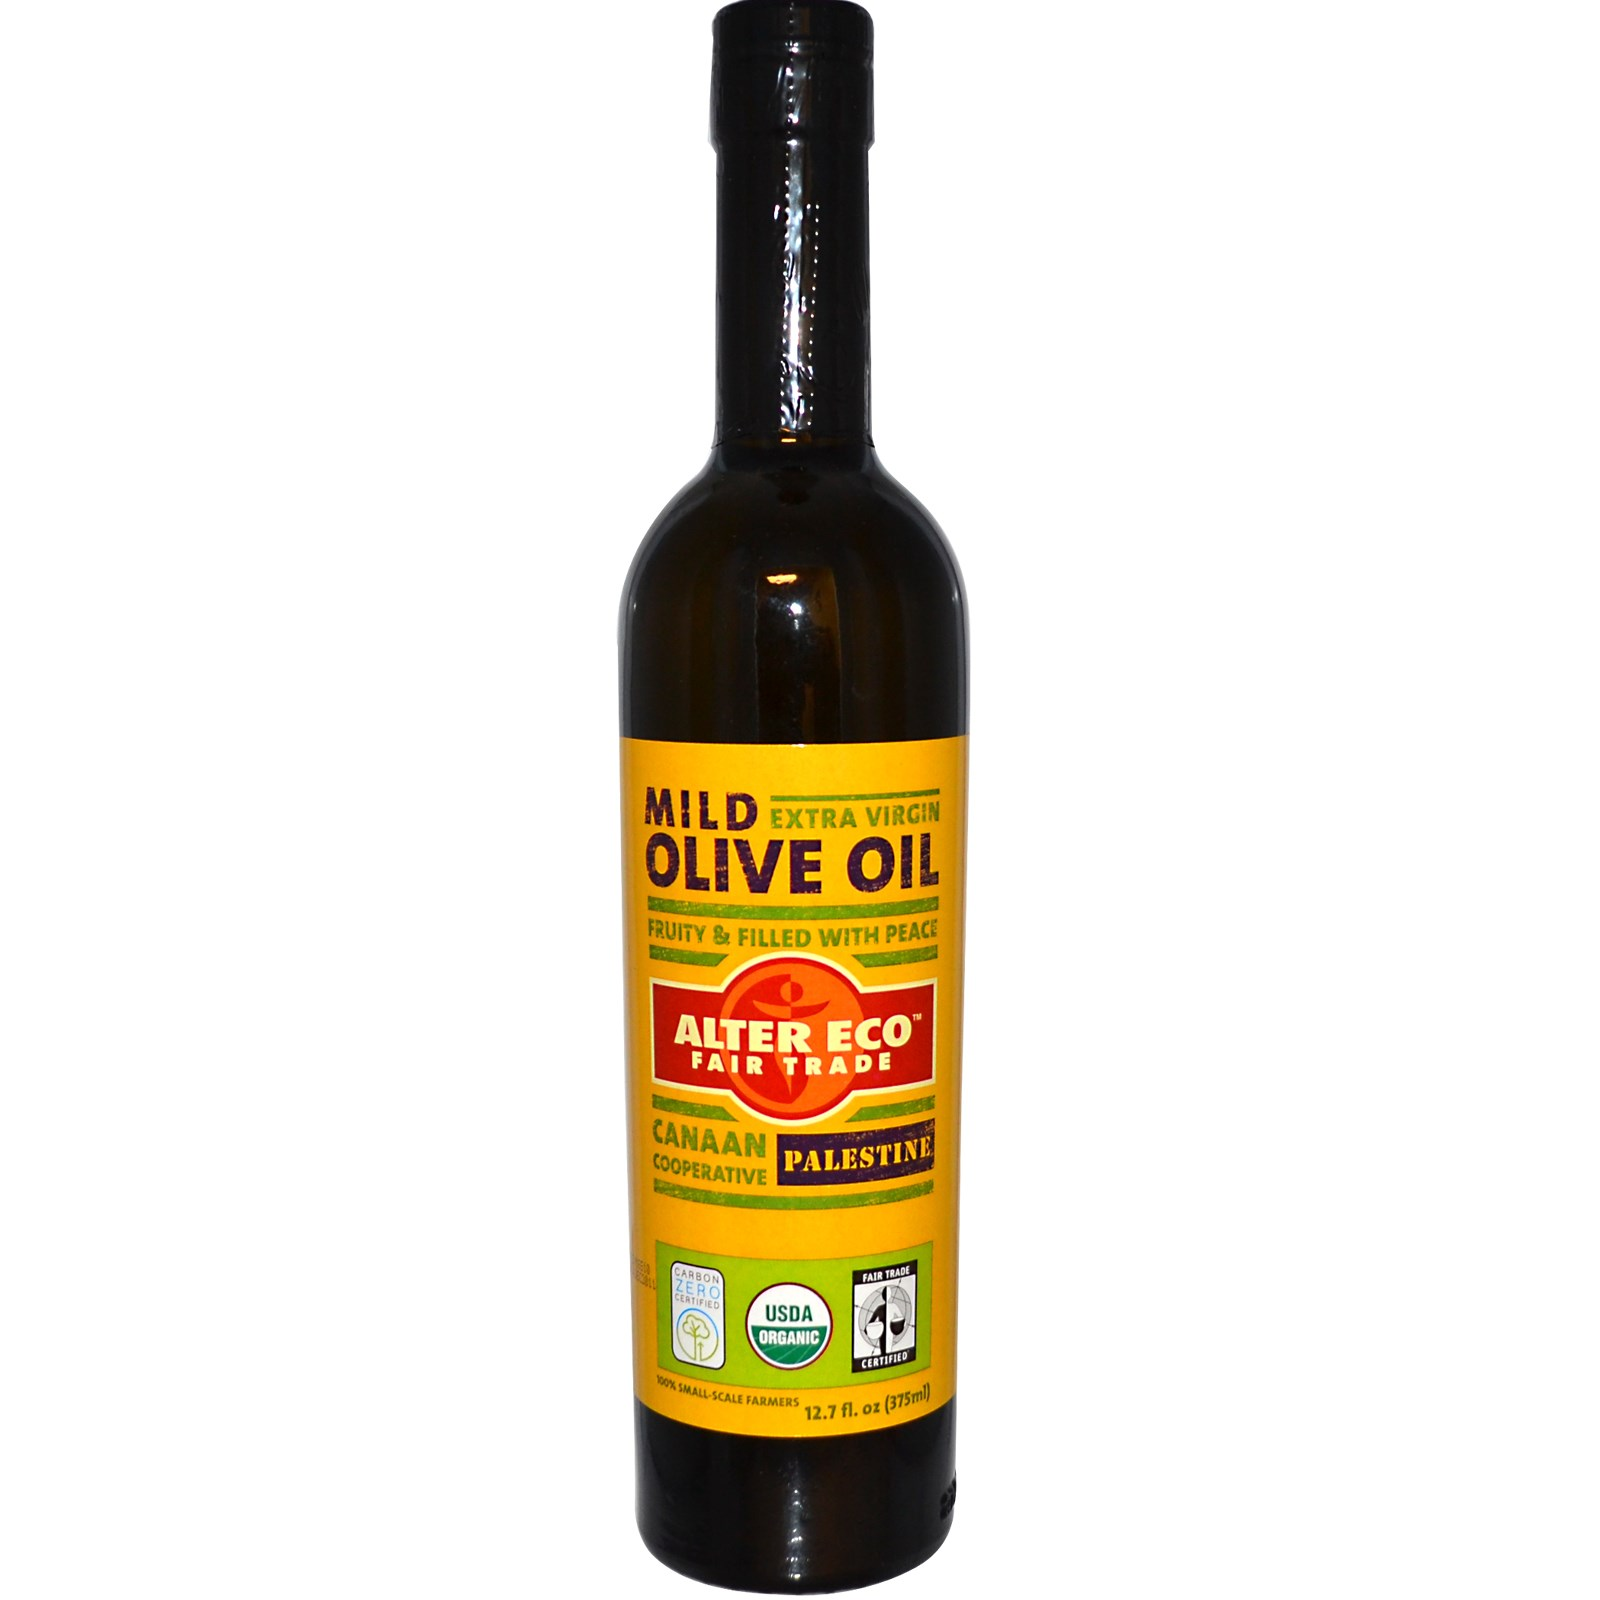 Alter Eco Extra Virgin Olive Oil - Mild